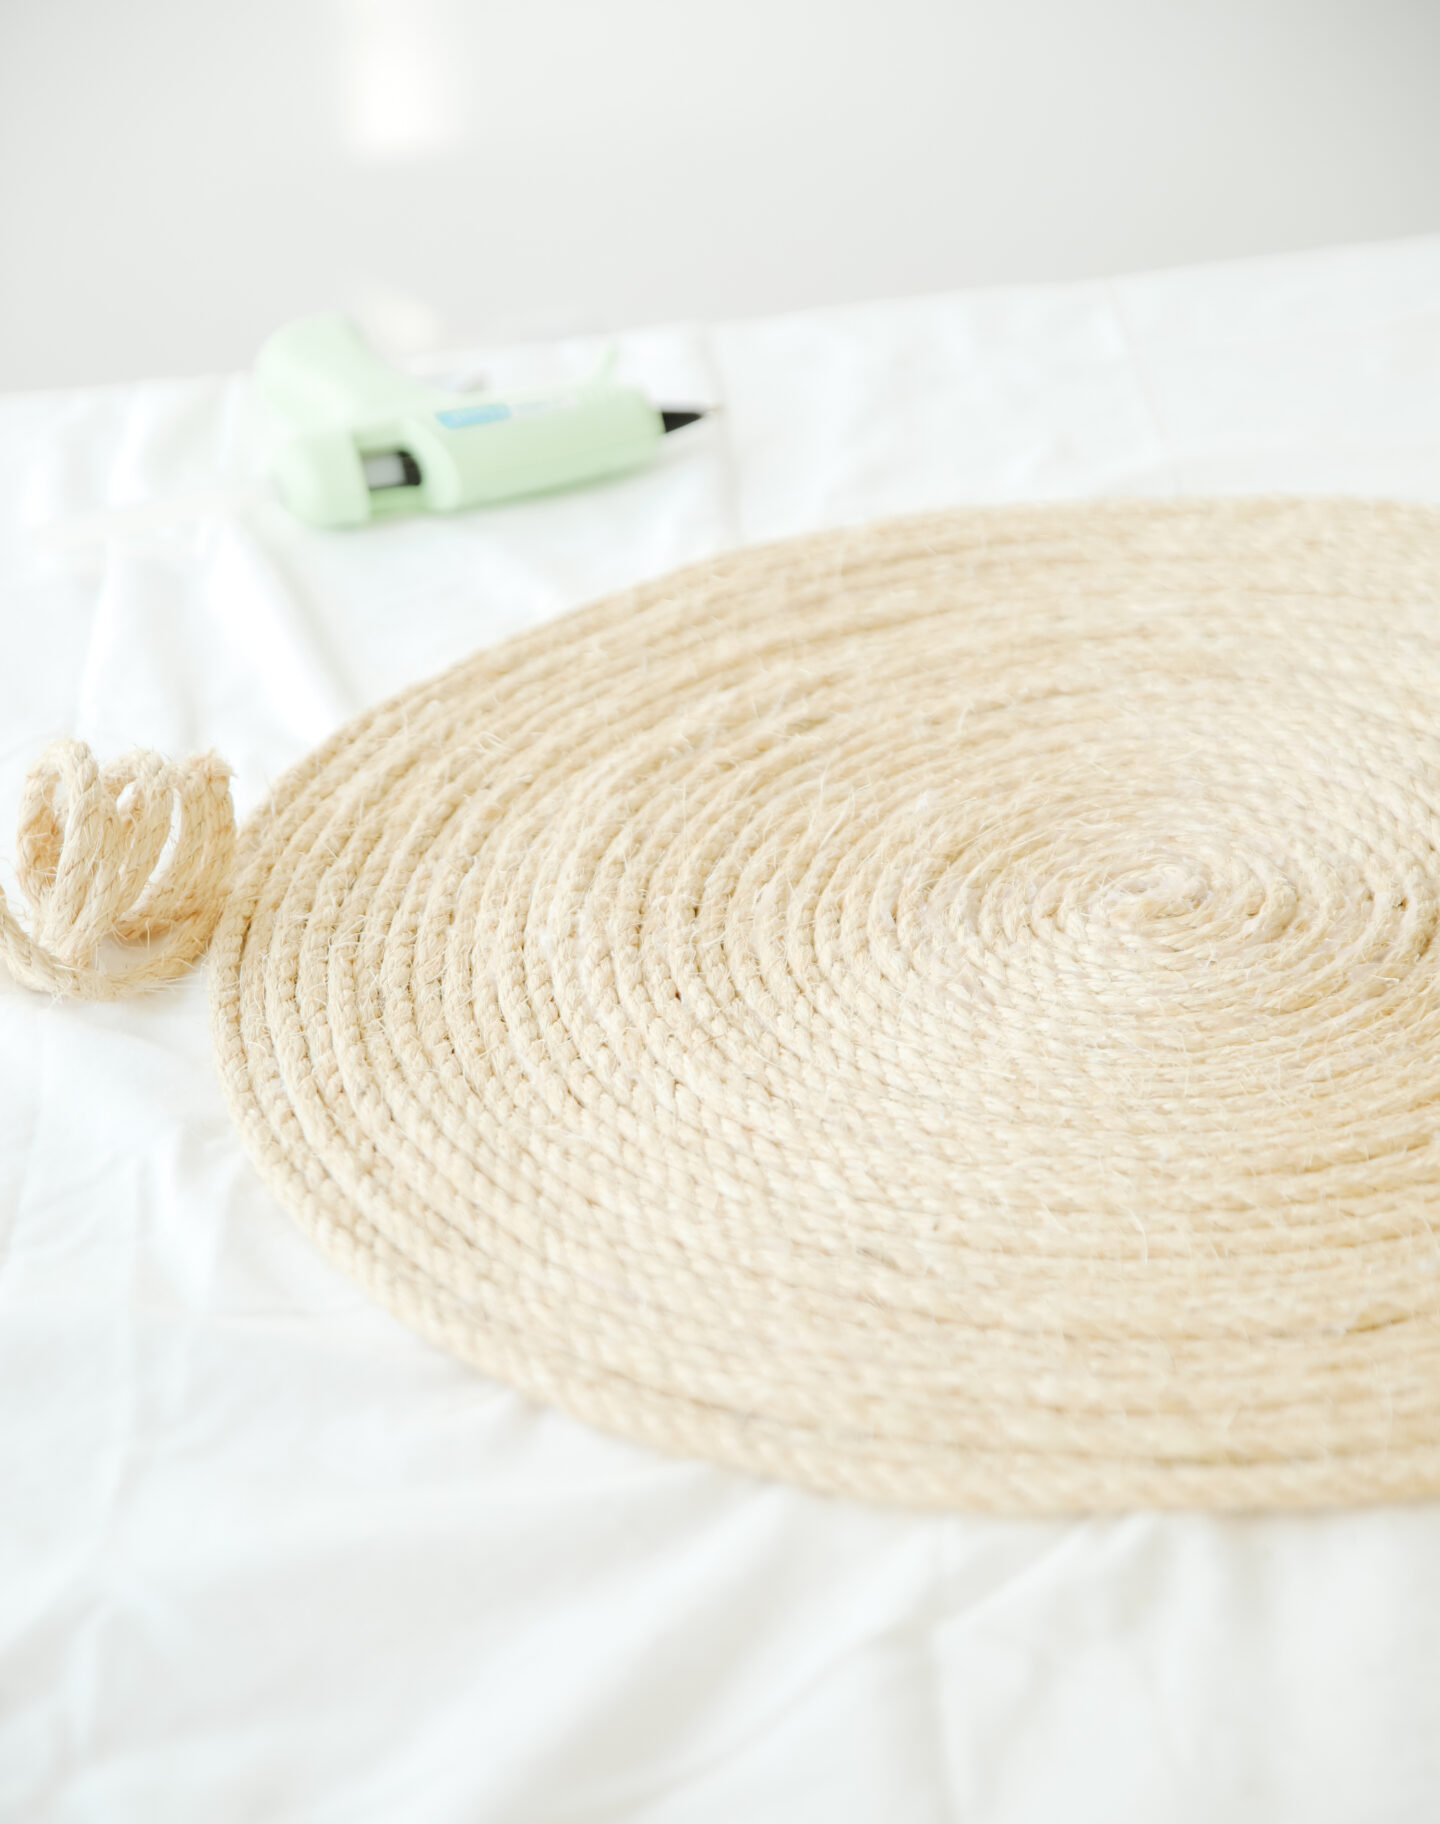 Round Rope Rug Easy DIY project